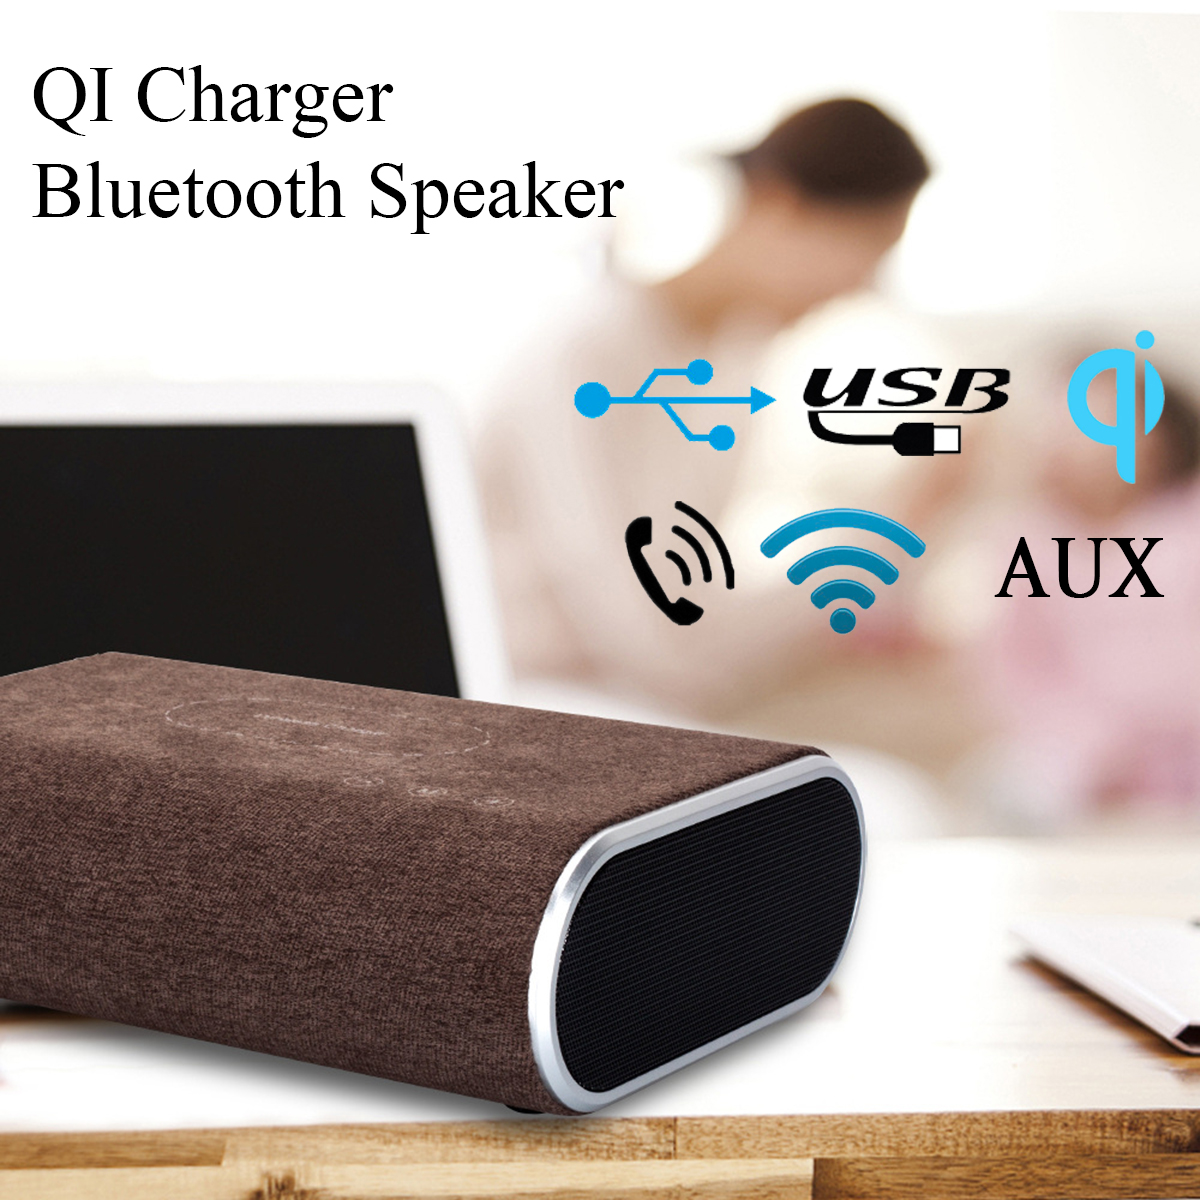 Super Bass Bluetooth Speaker QI Wireless Charger Mount Pad Bluetooth 4.1 Sound Bar AUX Mobile Phone Charging Charger for Samsung super mini universal qi standard wireless charger charging plate hyacinth